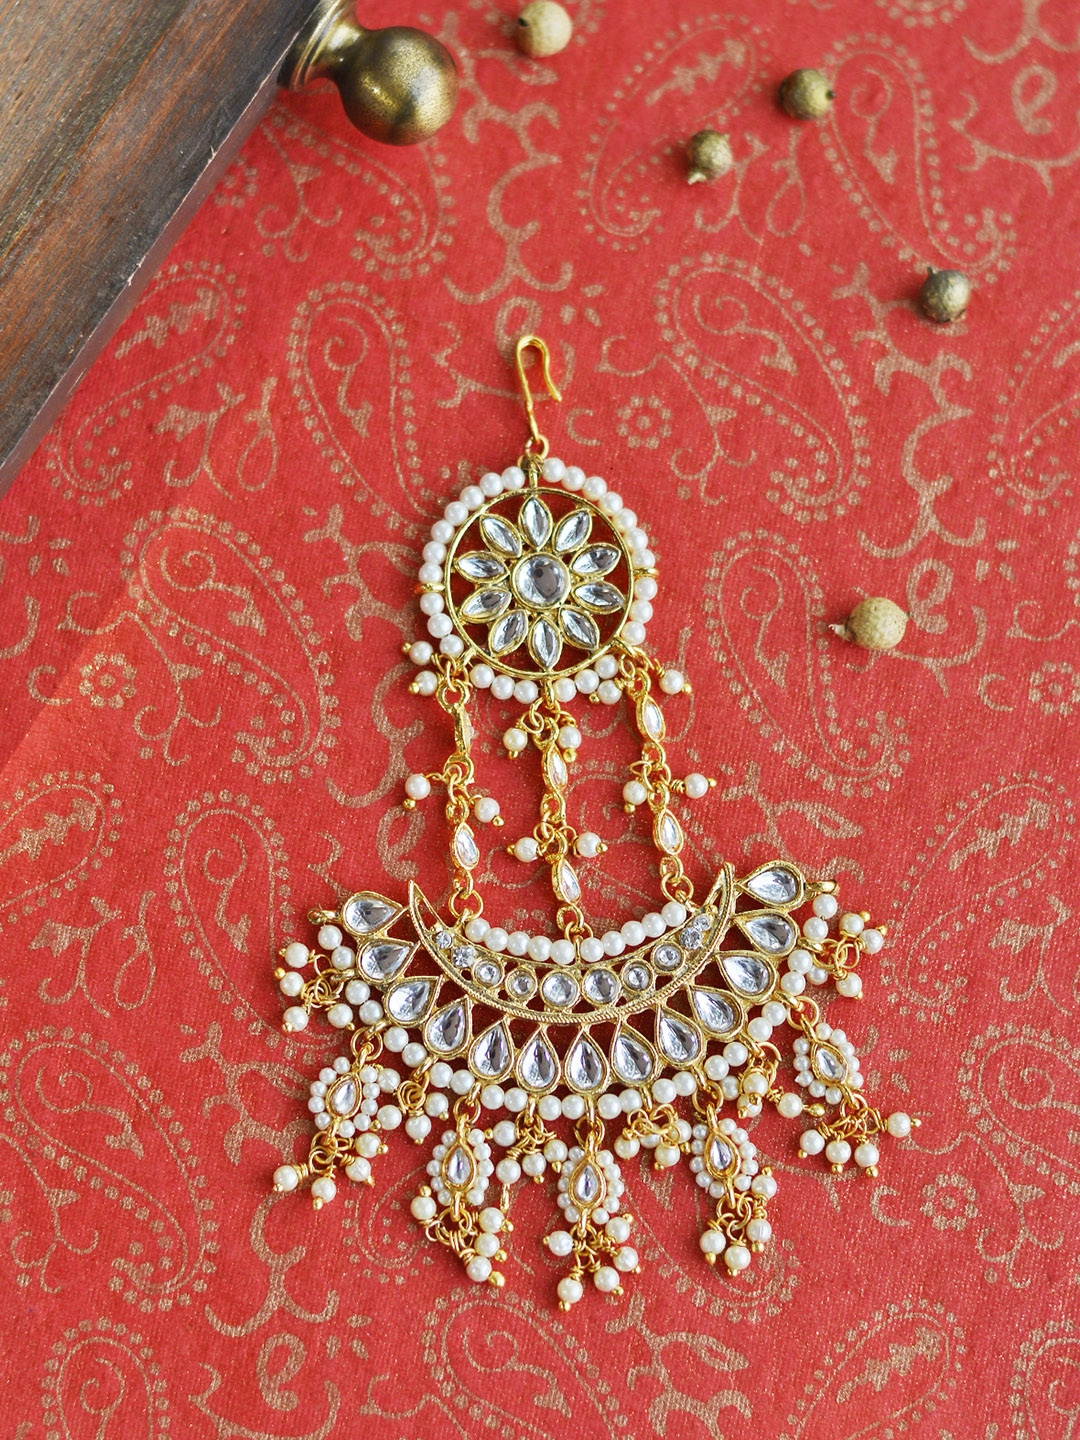 Precise Gold Tone Kundan Stone Ethnic Traditional Jhoomar Passa Forehead Jewellery Bridal & Wedding Party Jewelry